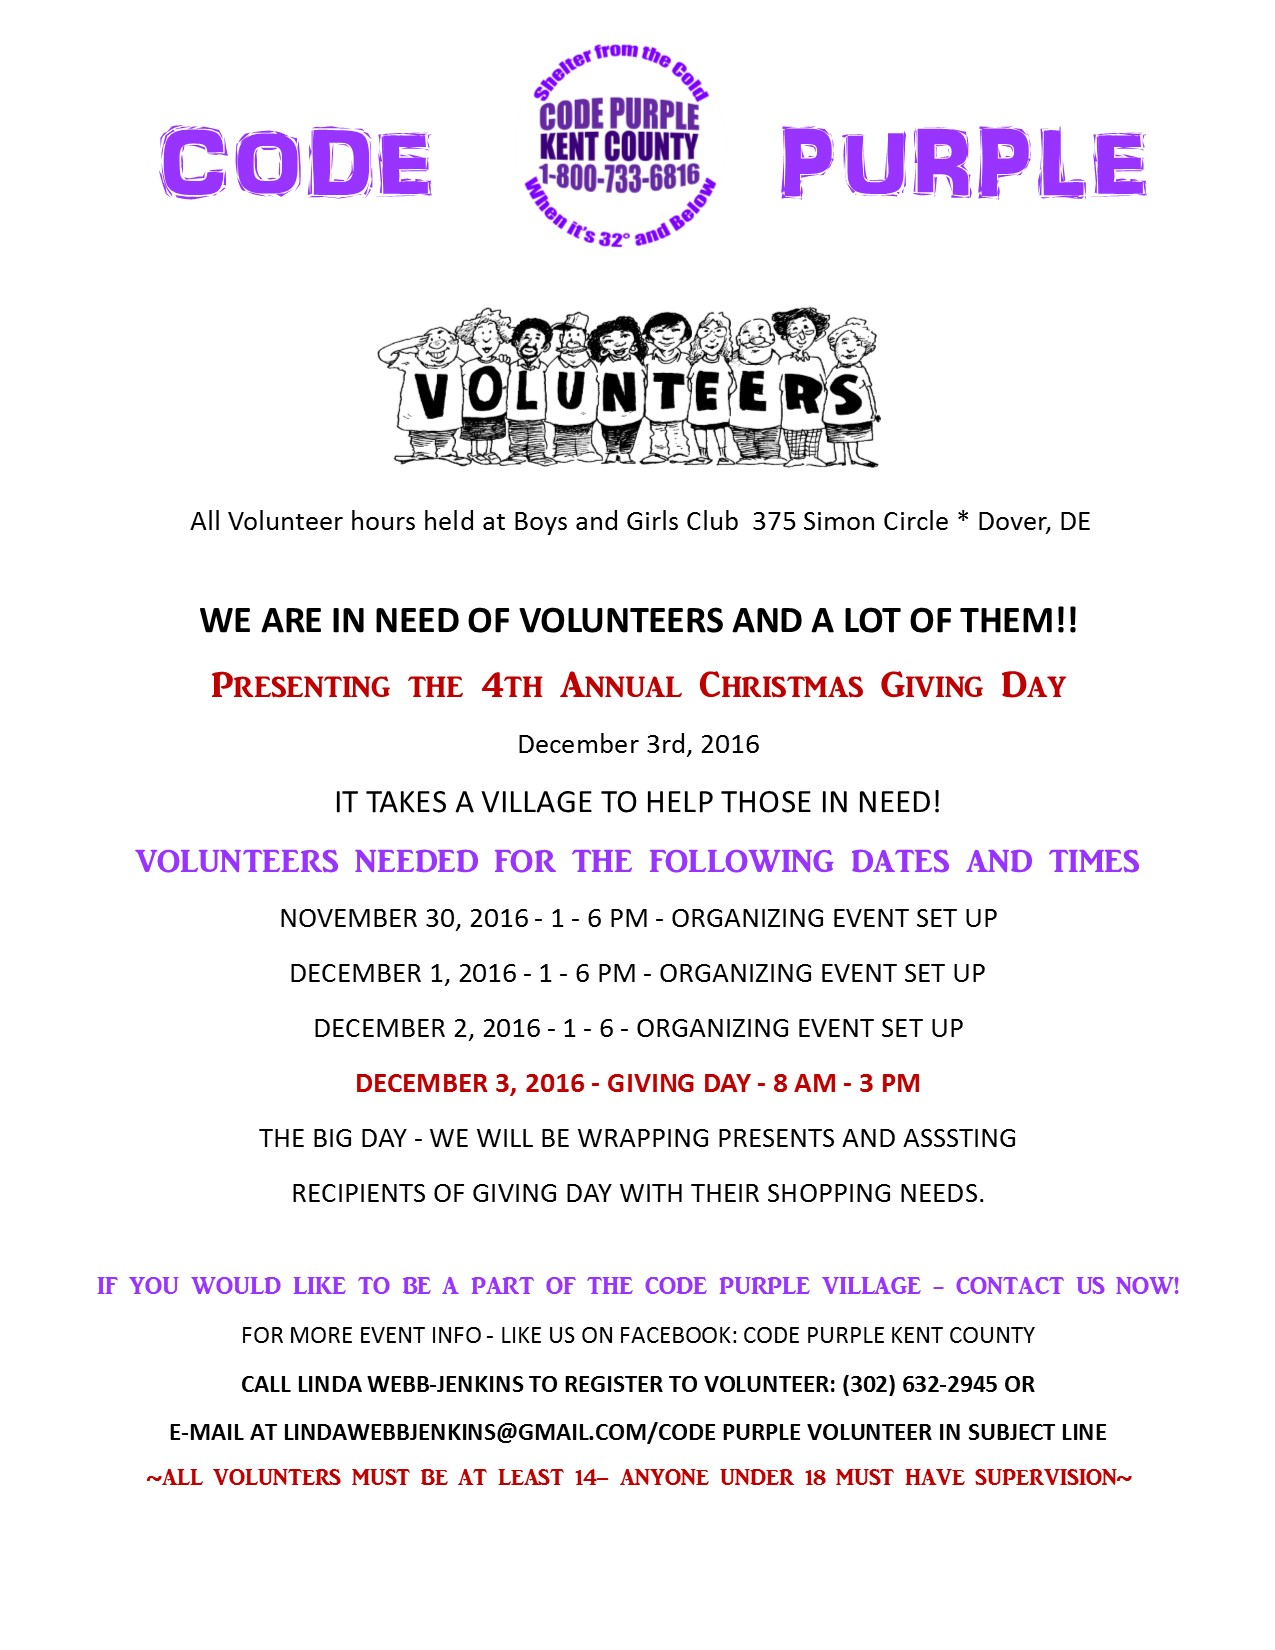 Delaware kent county viola - Code Purple Call To Action